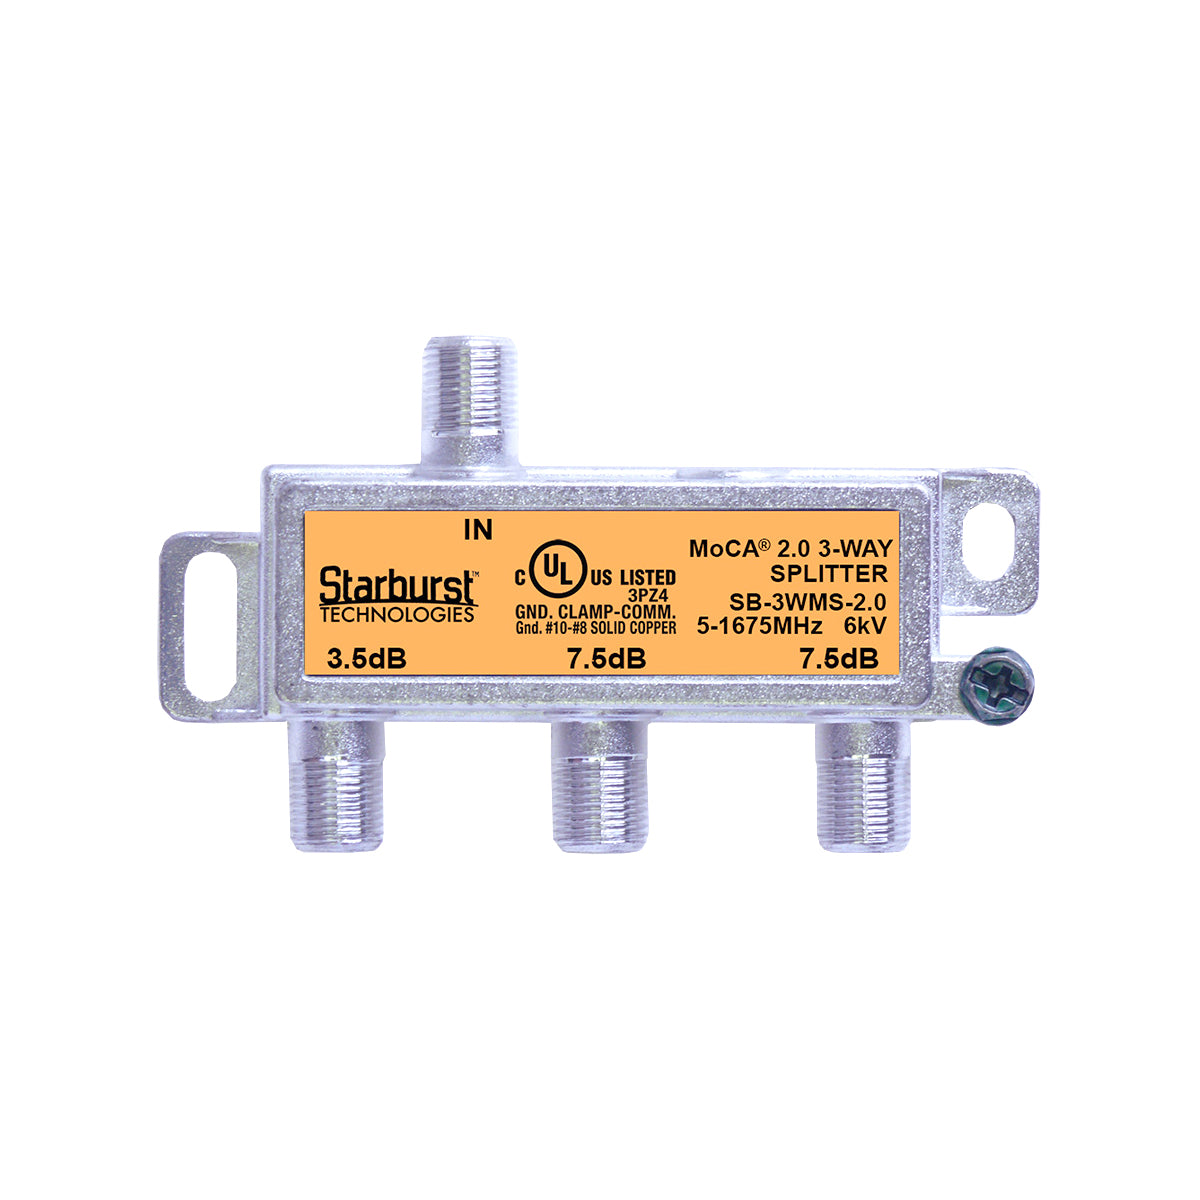 SB-3WMS-2.0 - 3 Way Horizontal Coaxial Cable Splitter, 6Kv Rated, 1GHz, MoCA 2.0, HPNA and DOCSIS 3.1 Compatible, 5-1675 MHz Wide Band For Universal Home Networking